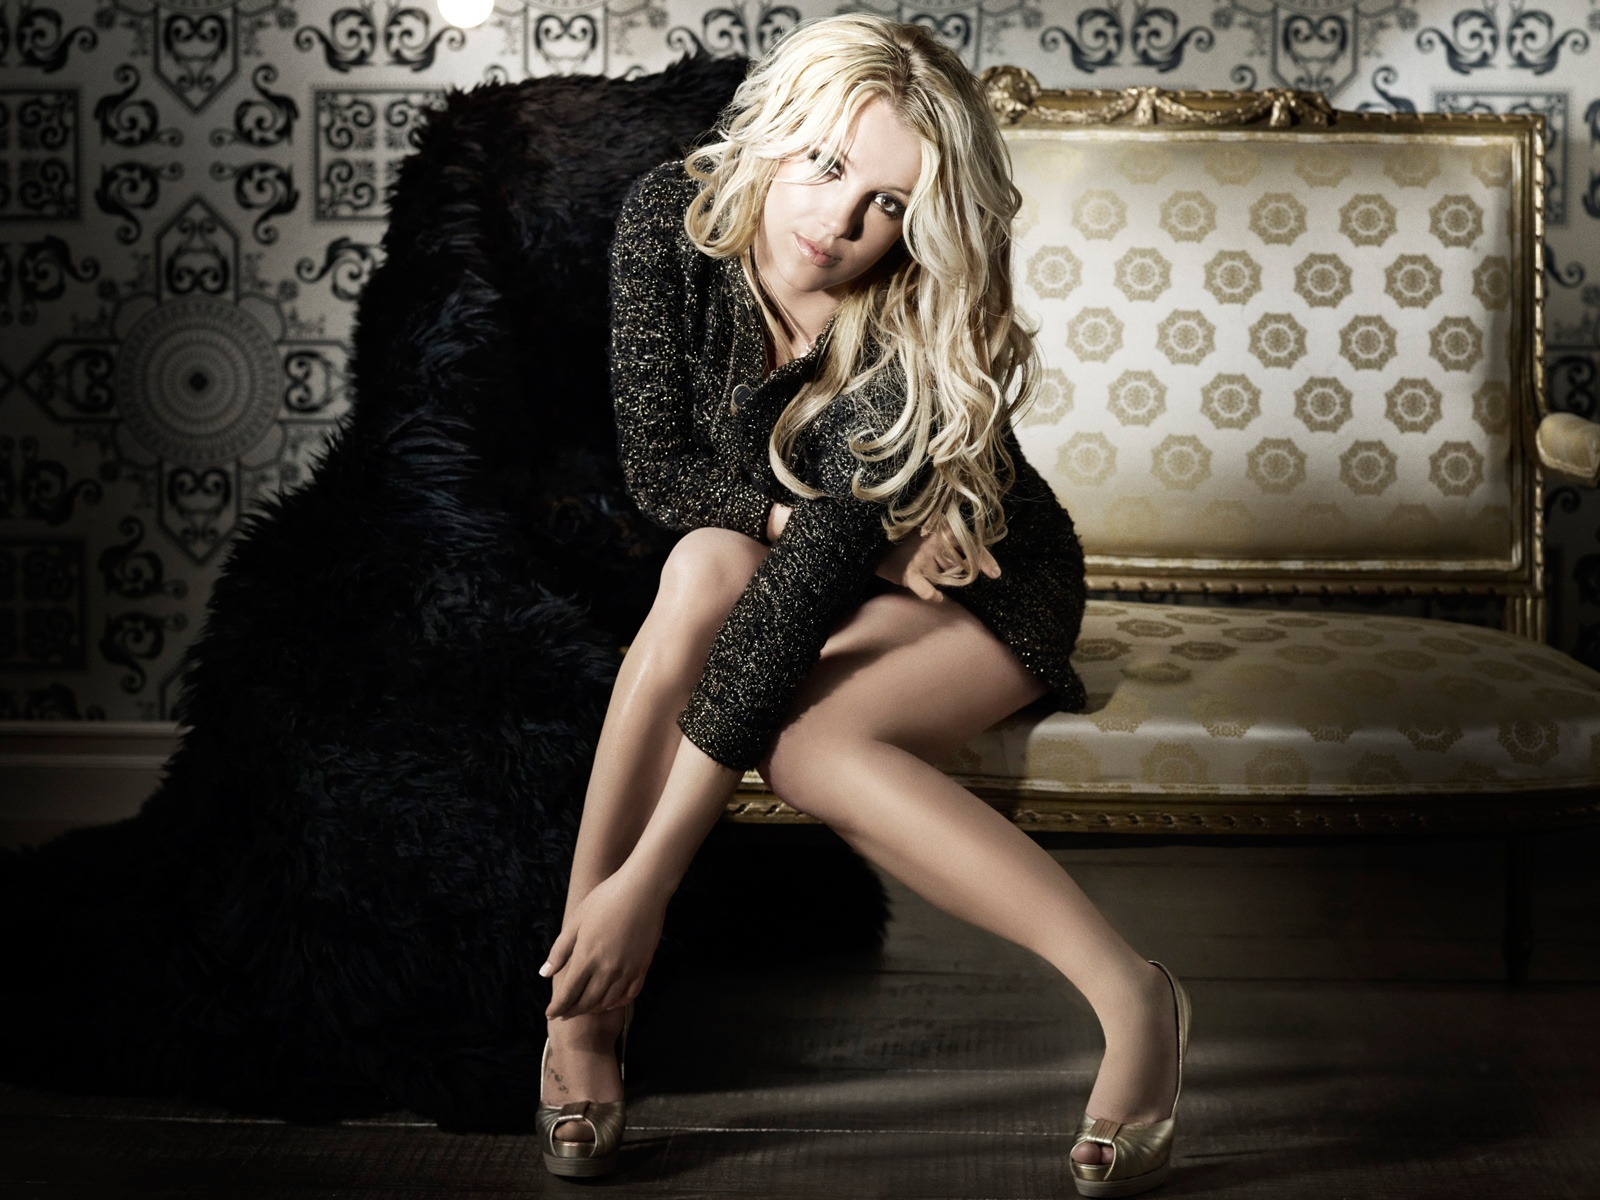 http://2.bp.blogspot.com/-U-SZ6HS1JHE/Tg0lOItQcOI/AAAAAAAAAVs/8ohE9CvgvoE/s1600/Britney-Spears-2011-Wallpaper-HD-Wallpapers-for-fullscreen-and-widescreen-desktop-background-britney_spears_2011-1600x1200.jpg